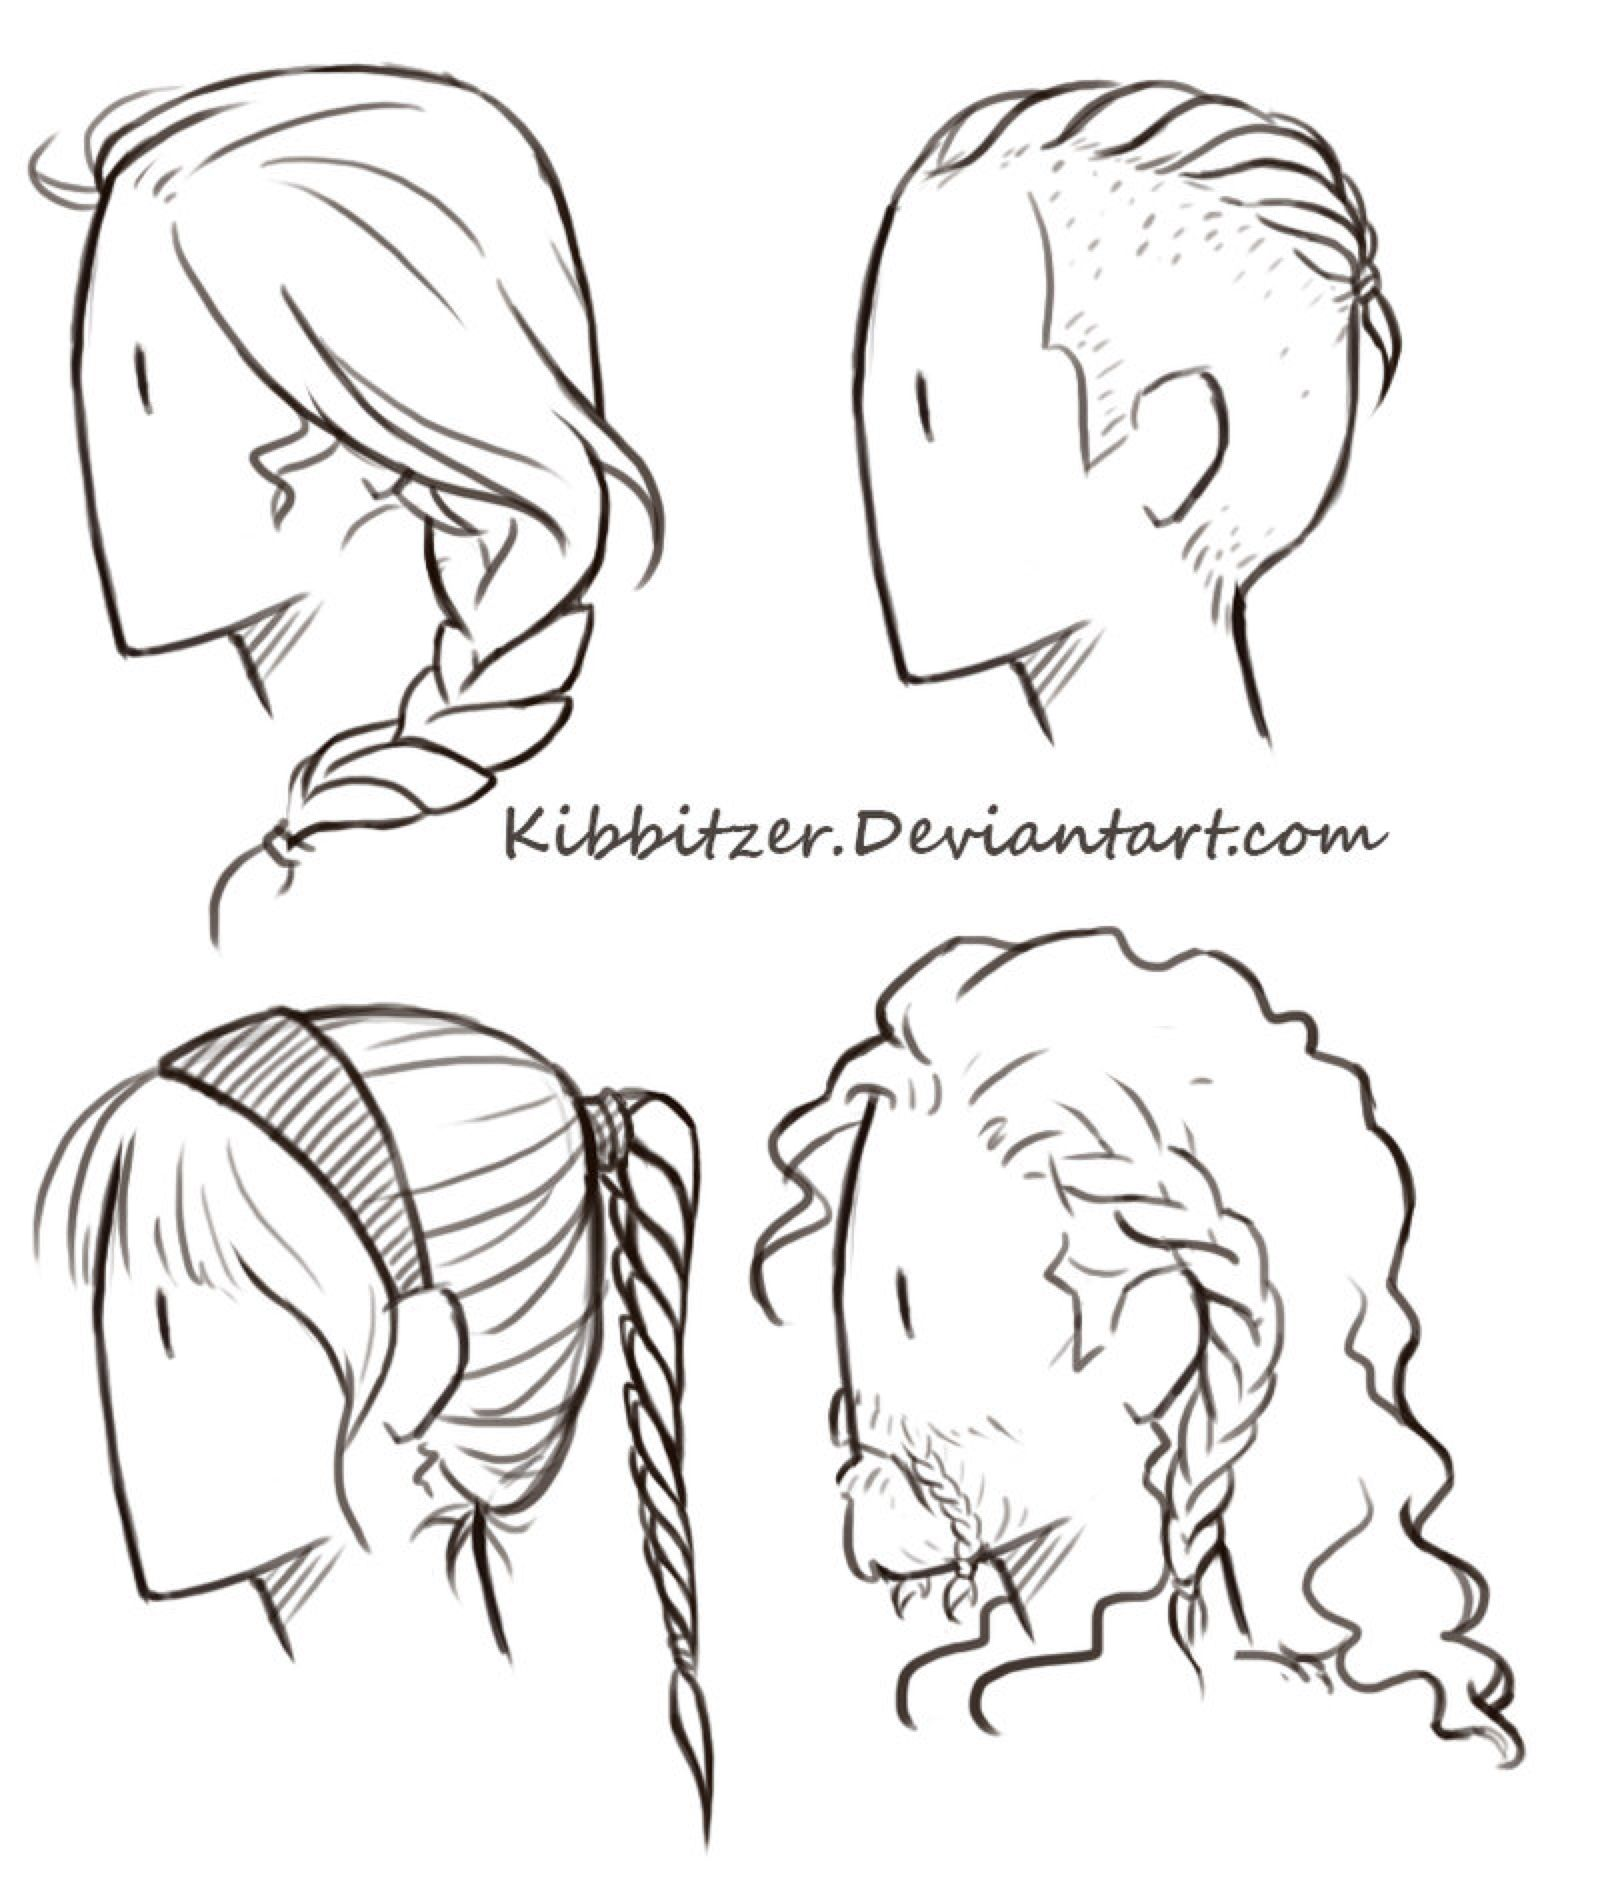 Braids reference sheet by kibbitzer on deviantart animemanga braids reference sheet by kibbitzer on deviantart lol last ones mustache is braided xd hexwebz Choice Image